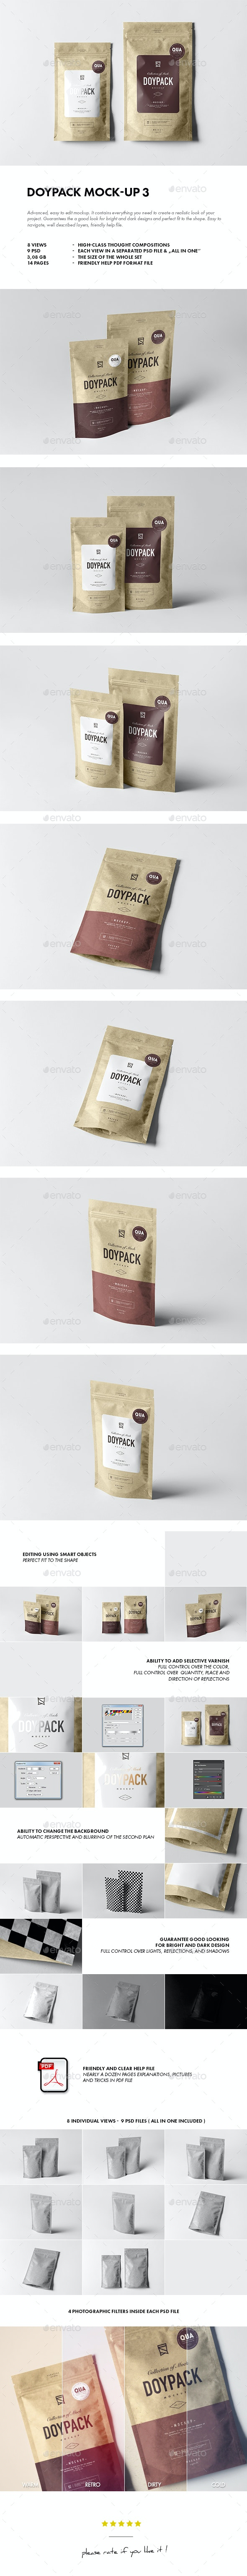 Doypack Mock-up 3 - Miscellaneous Packaging